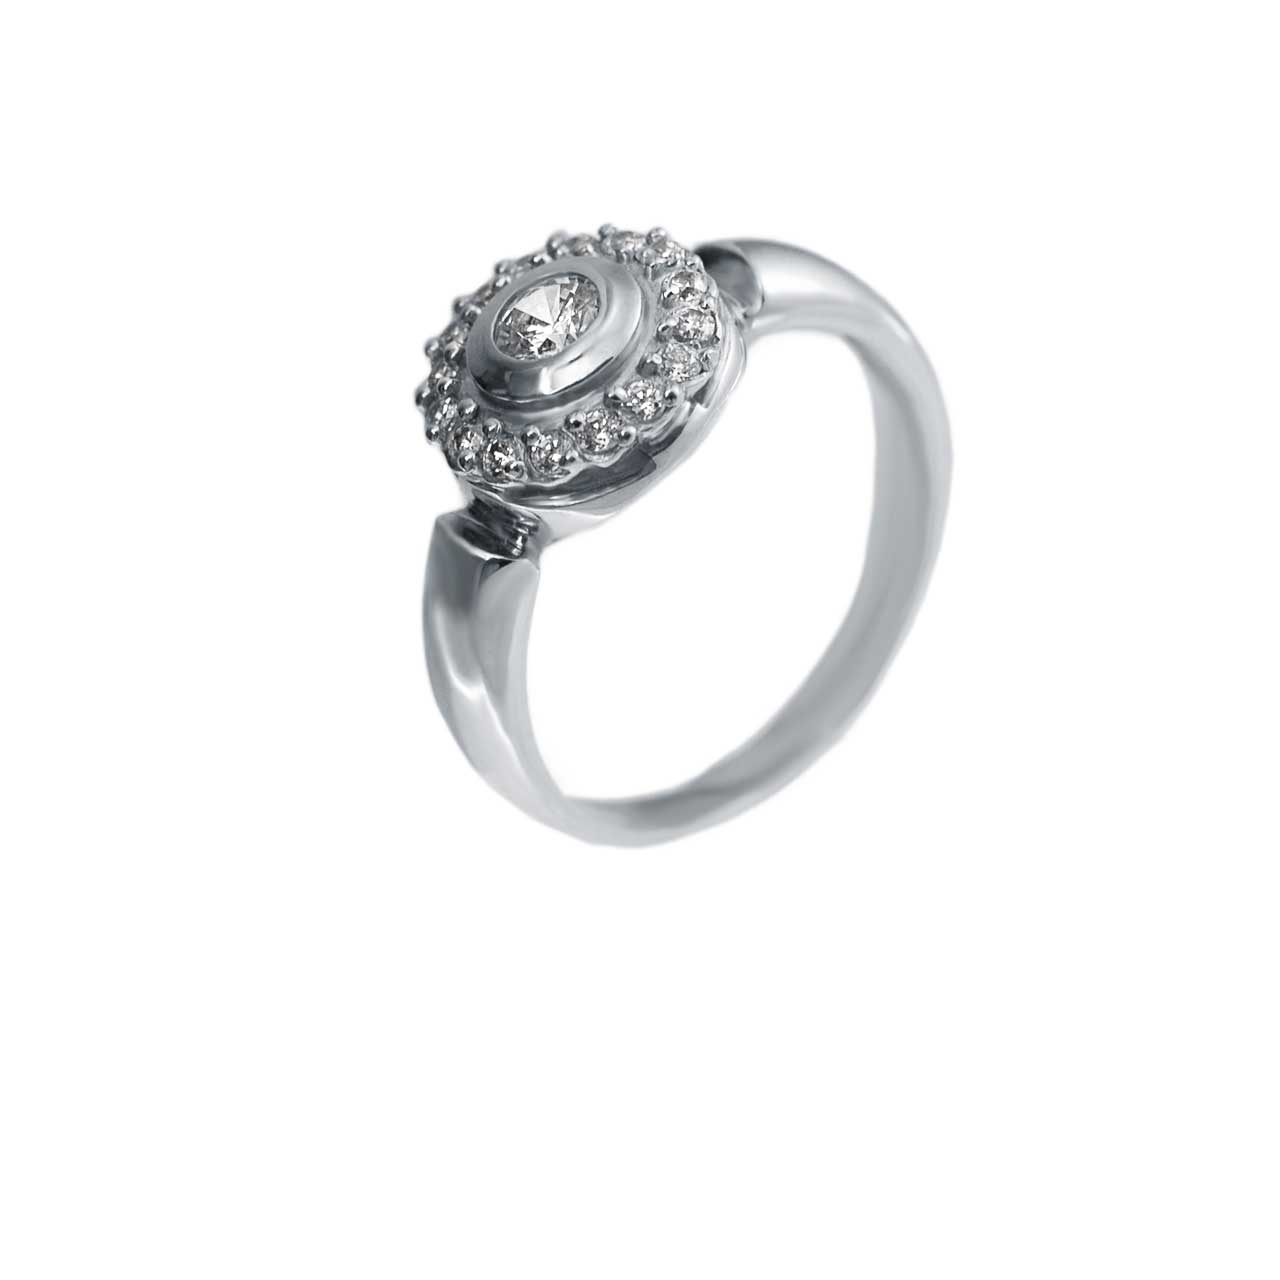 Palladium gold diamond ring from Russia 1